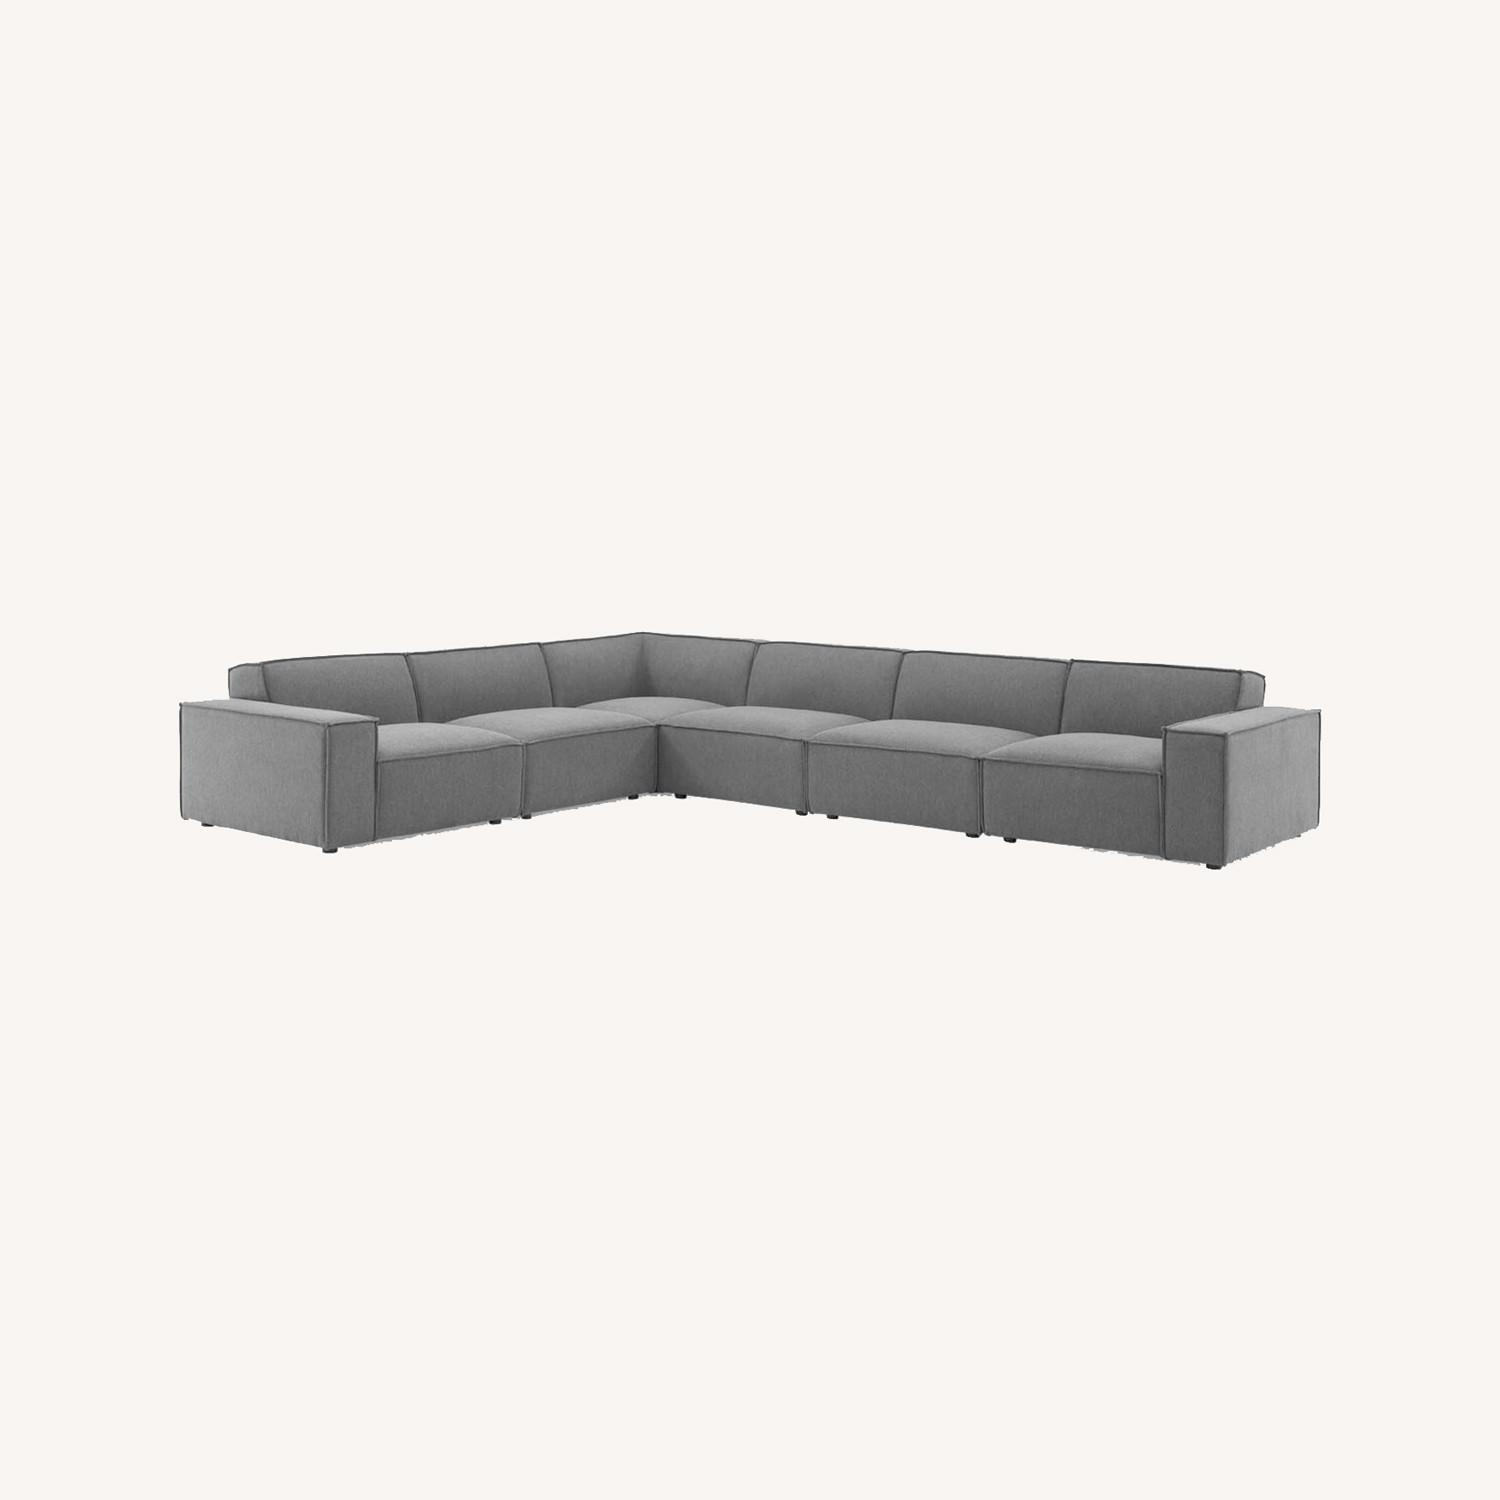 6Piece Sectional Sofa In Charcoal Polyester Fabric - image-11